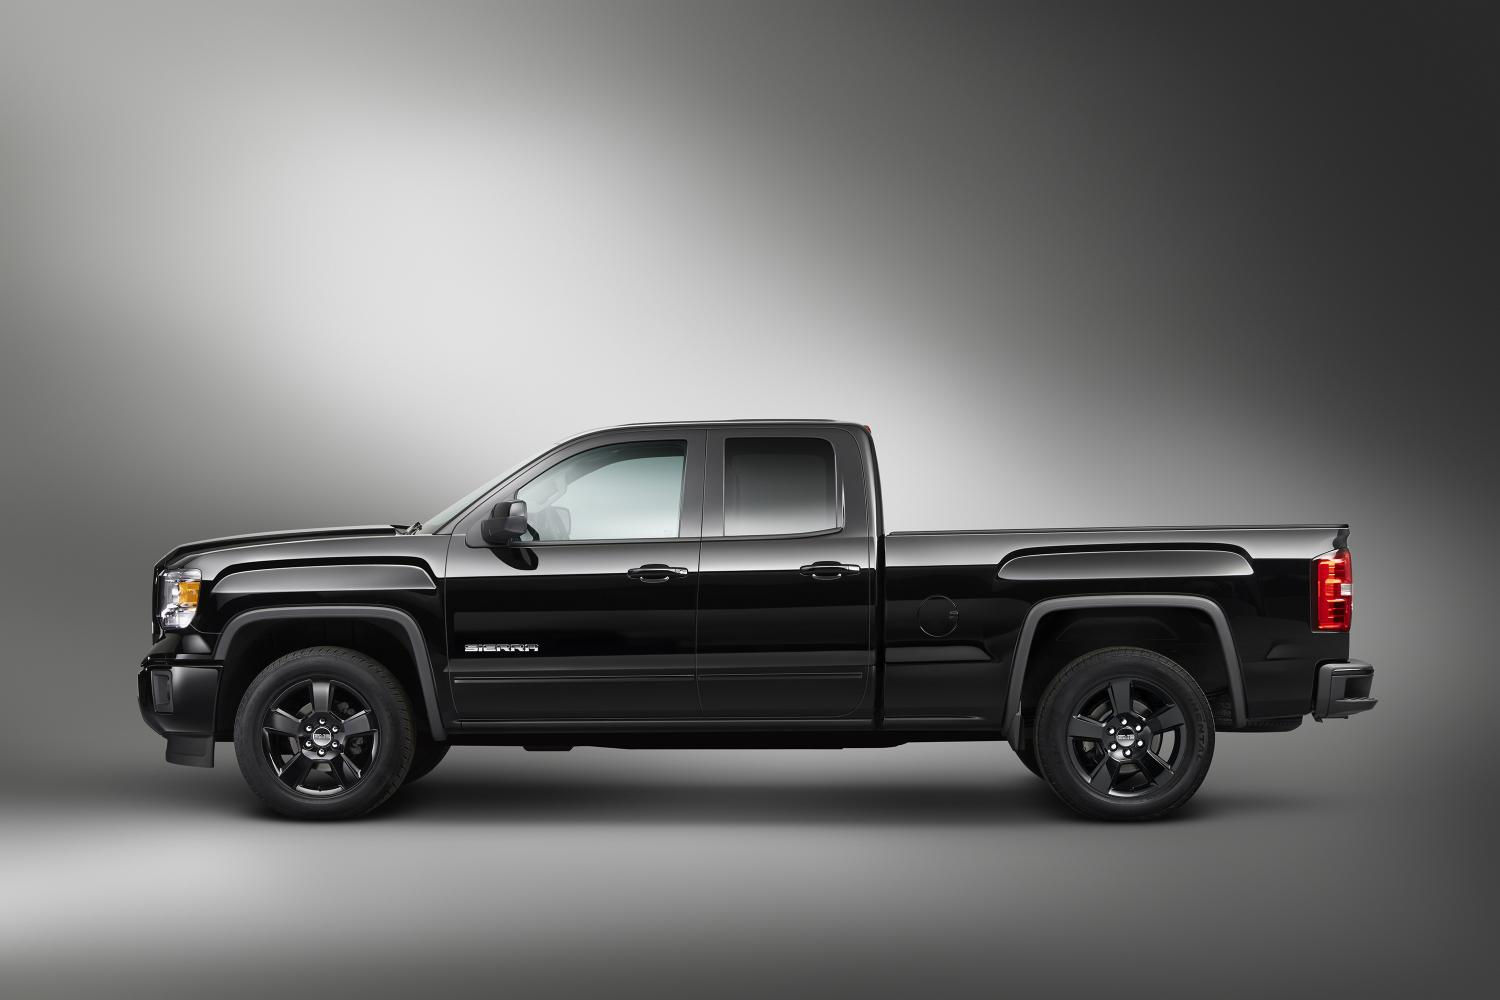 2015 Chevrolet Silverado 1500 Double Cab >> GMC Sierra Elevation Edition Detailed - autoevolution